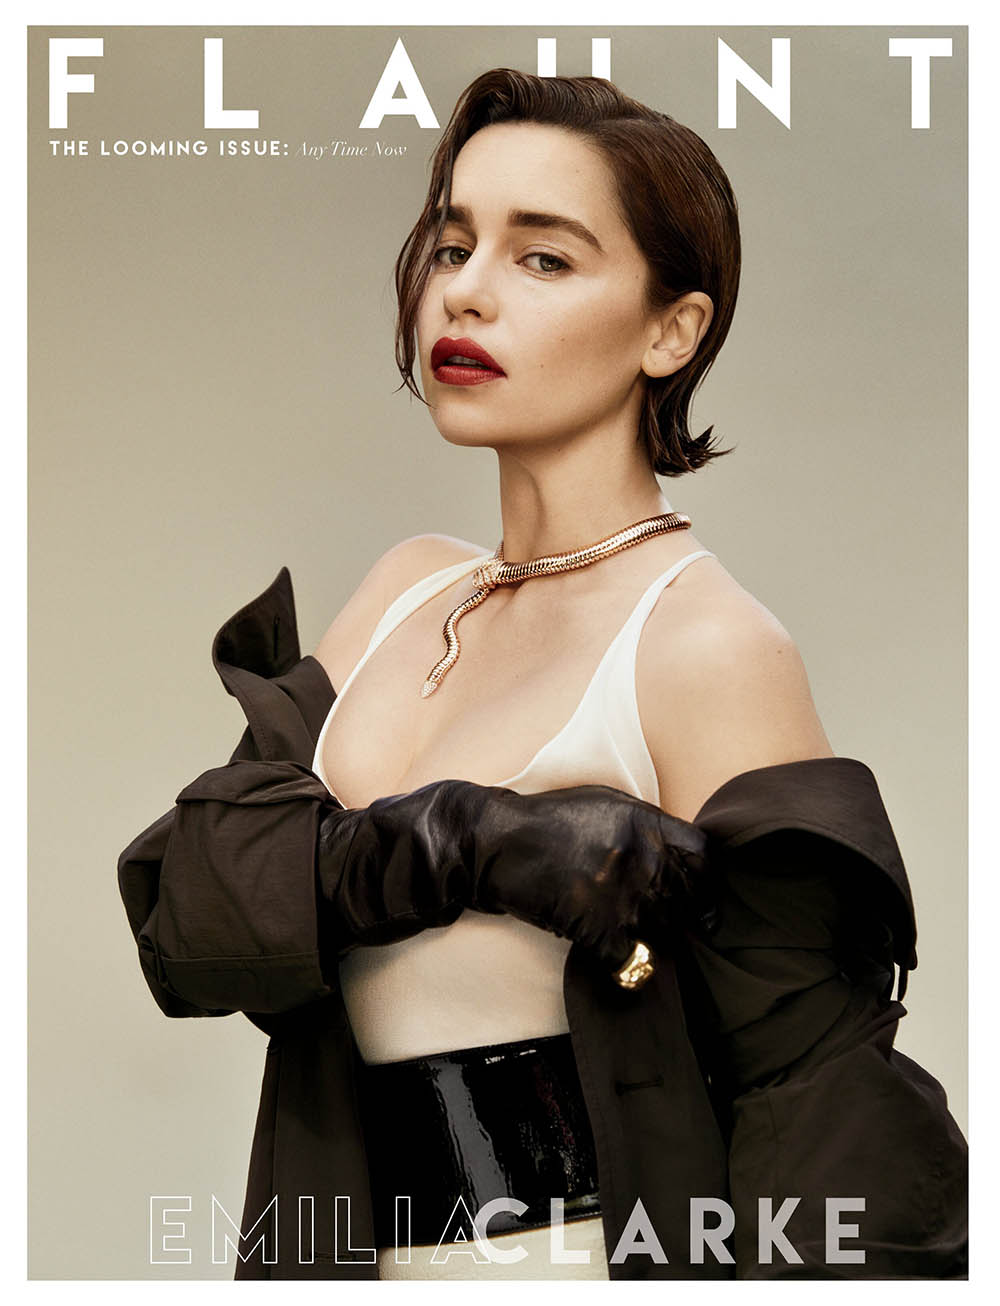 Emilia Clarke covers Flaunt Magazine Issue 166 by Olivia Malone